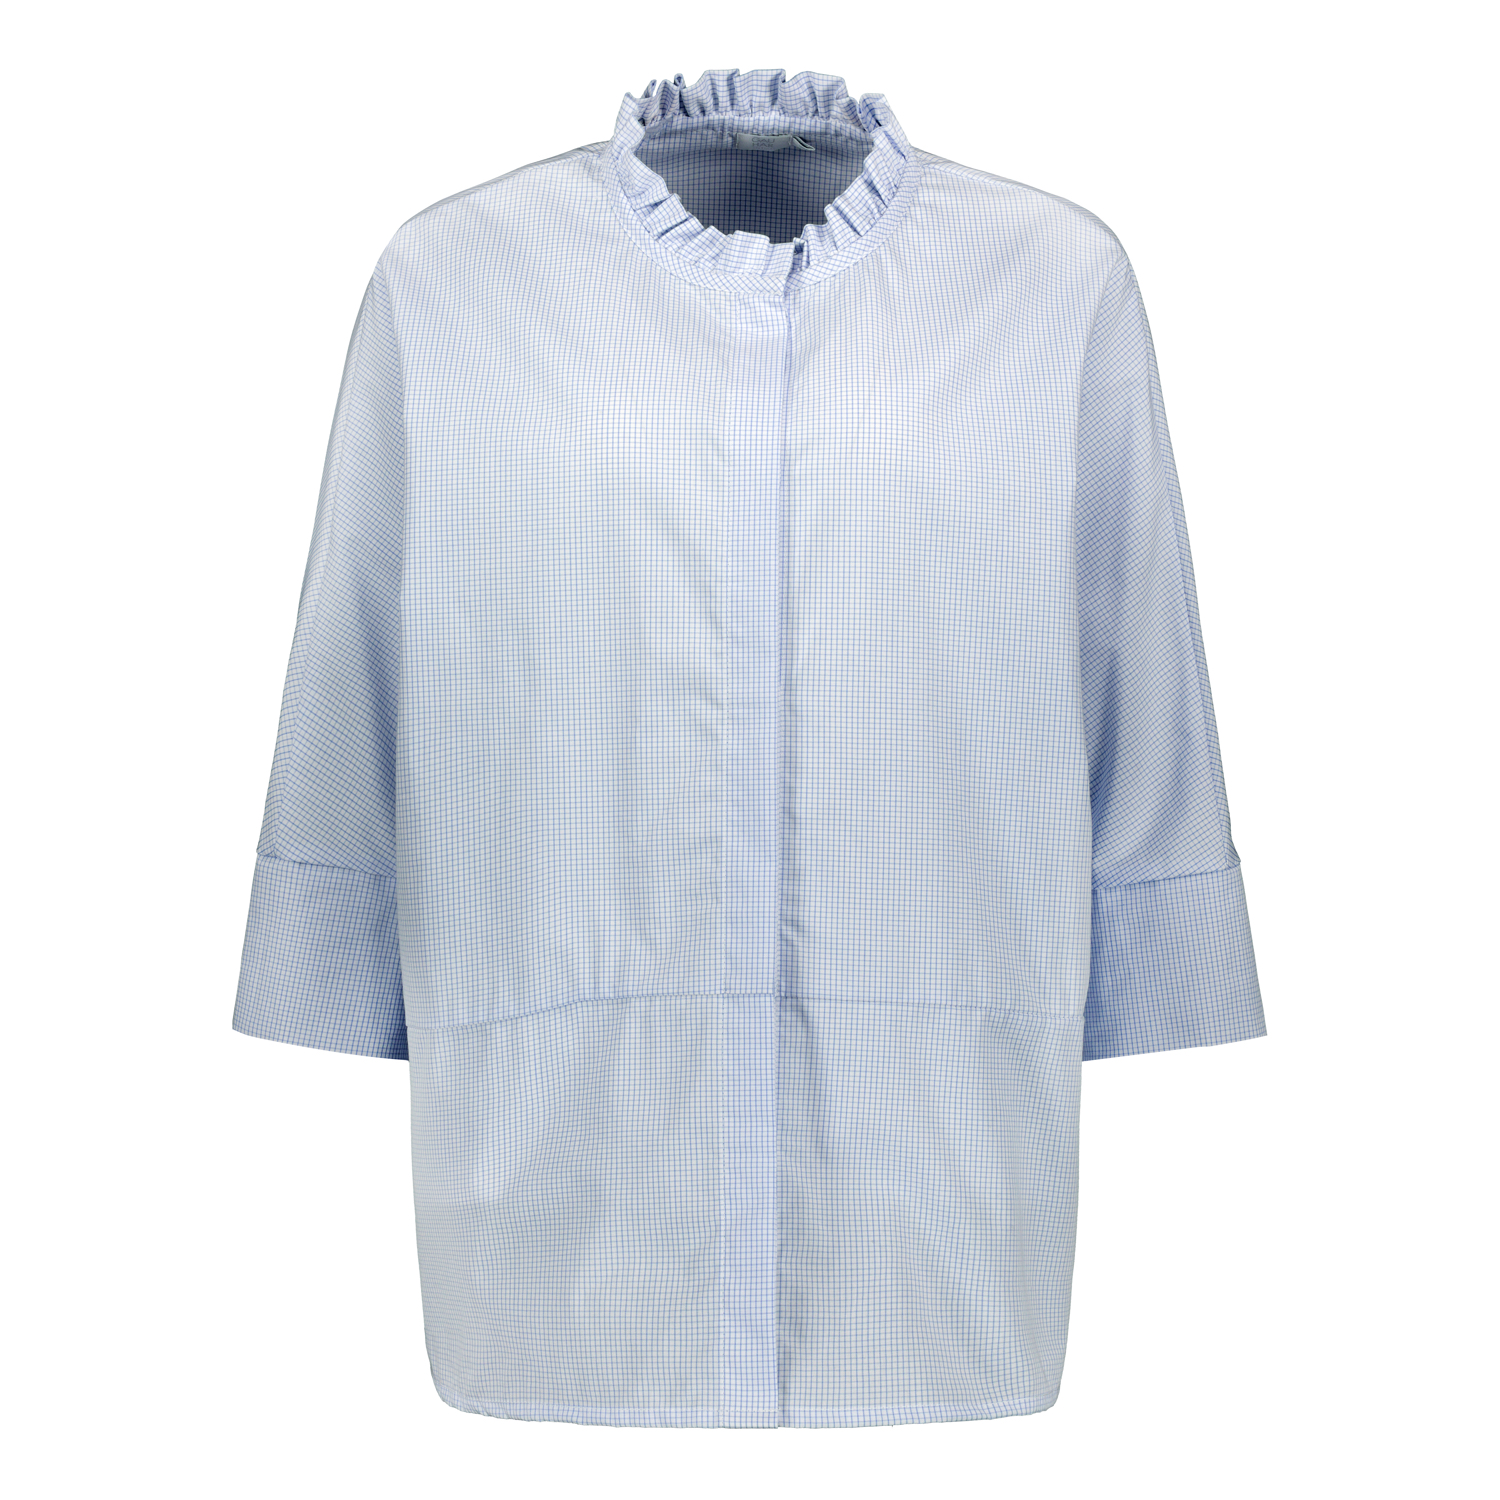 TUNIC SHIRT CHECK LIGHT BLUE